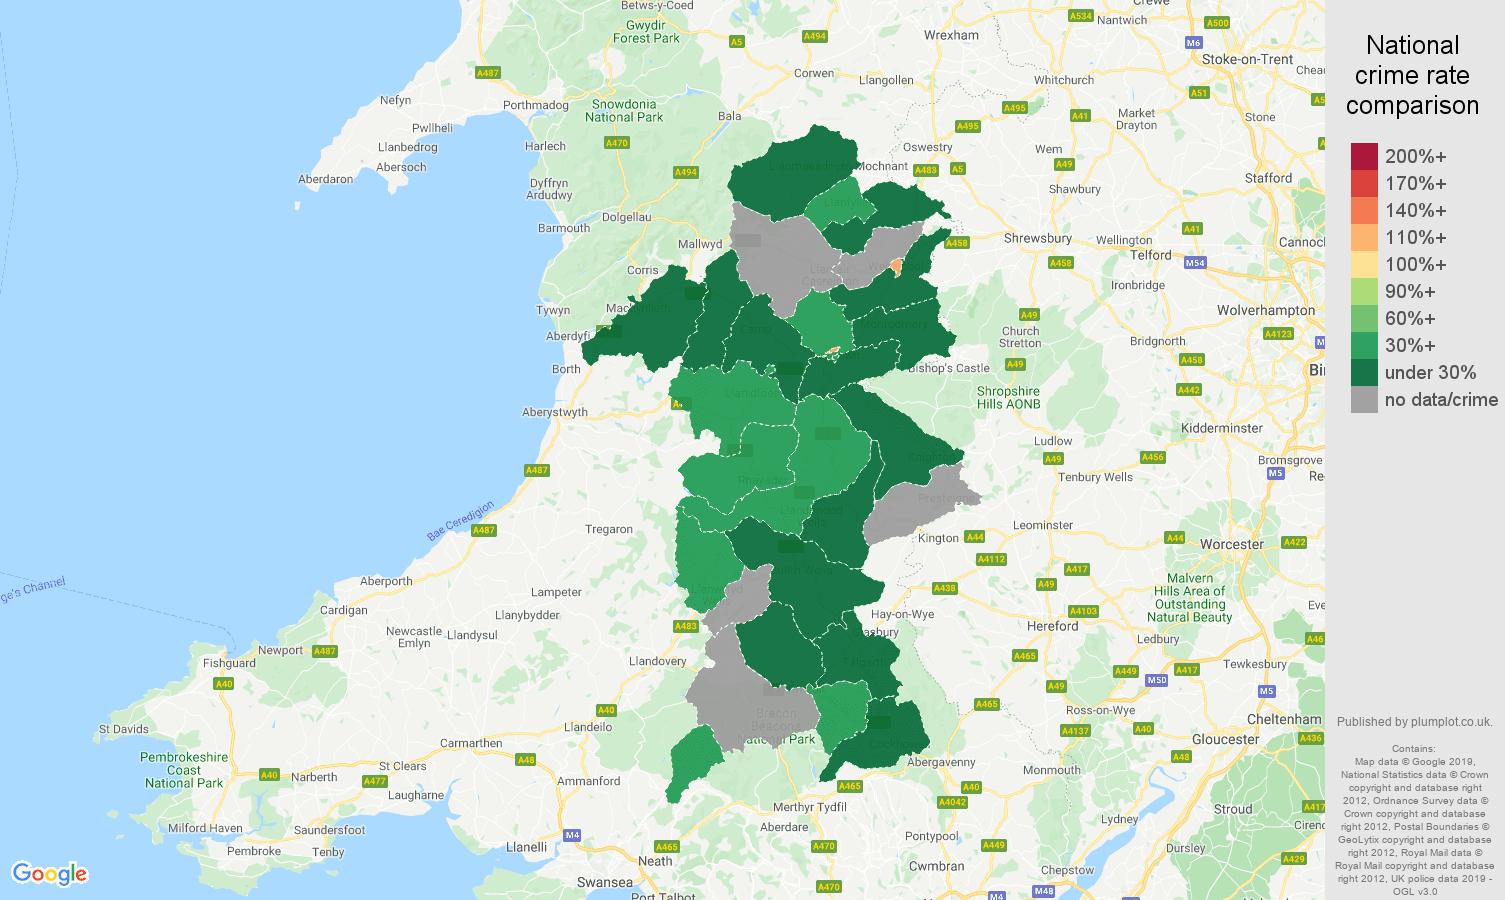 Powys shoplifting crime rate comparison map